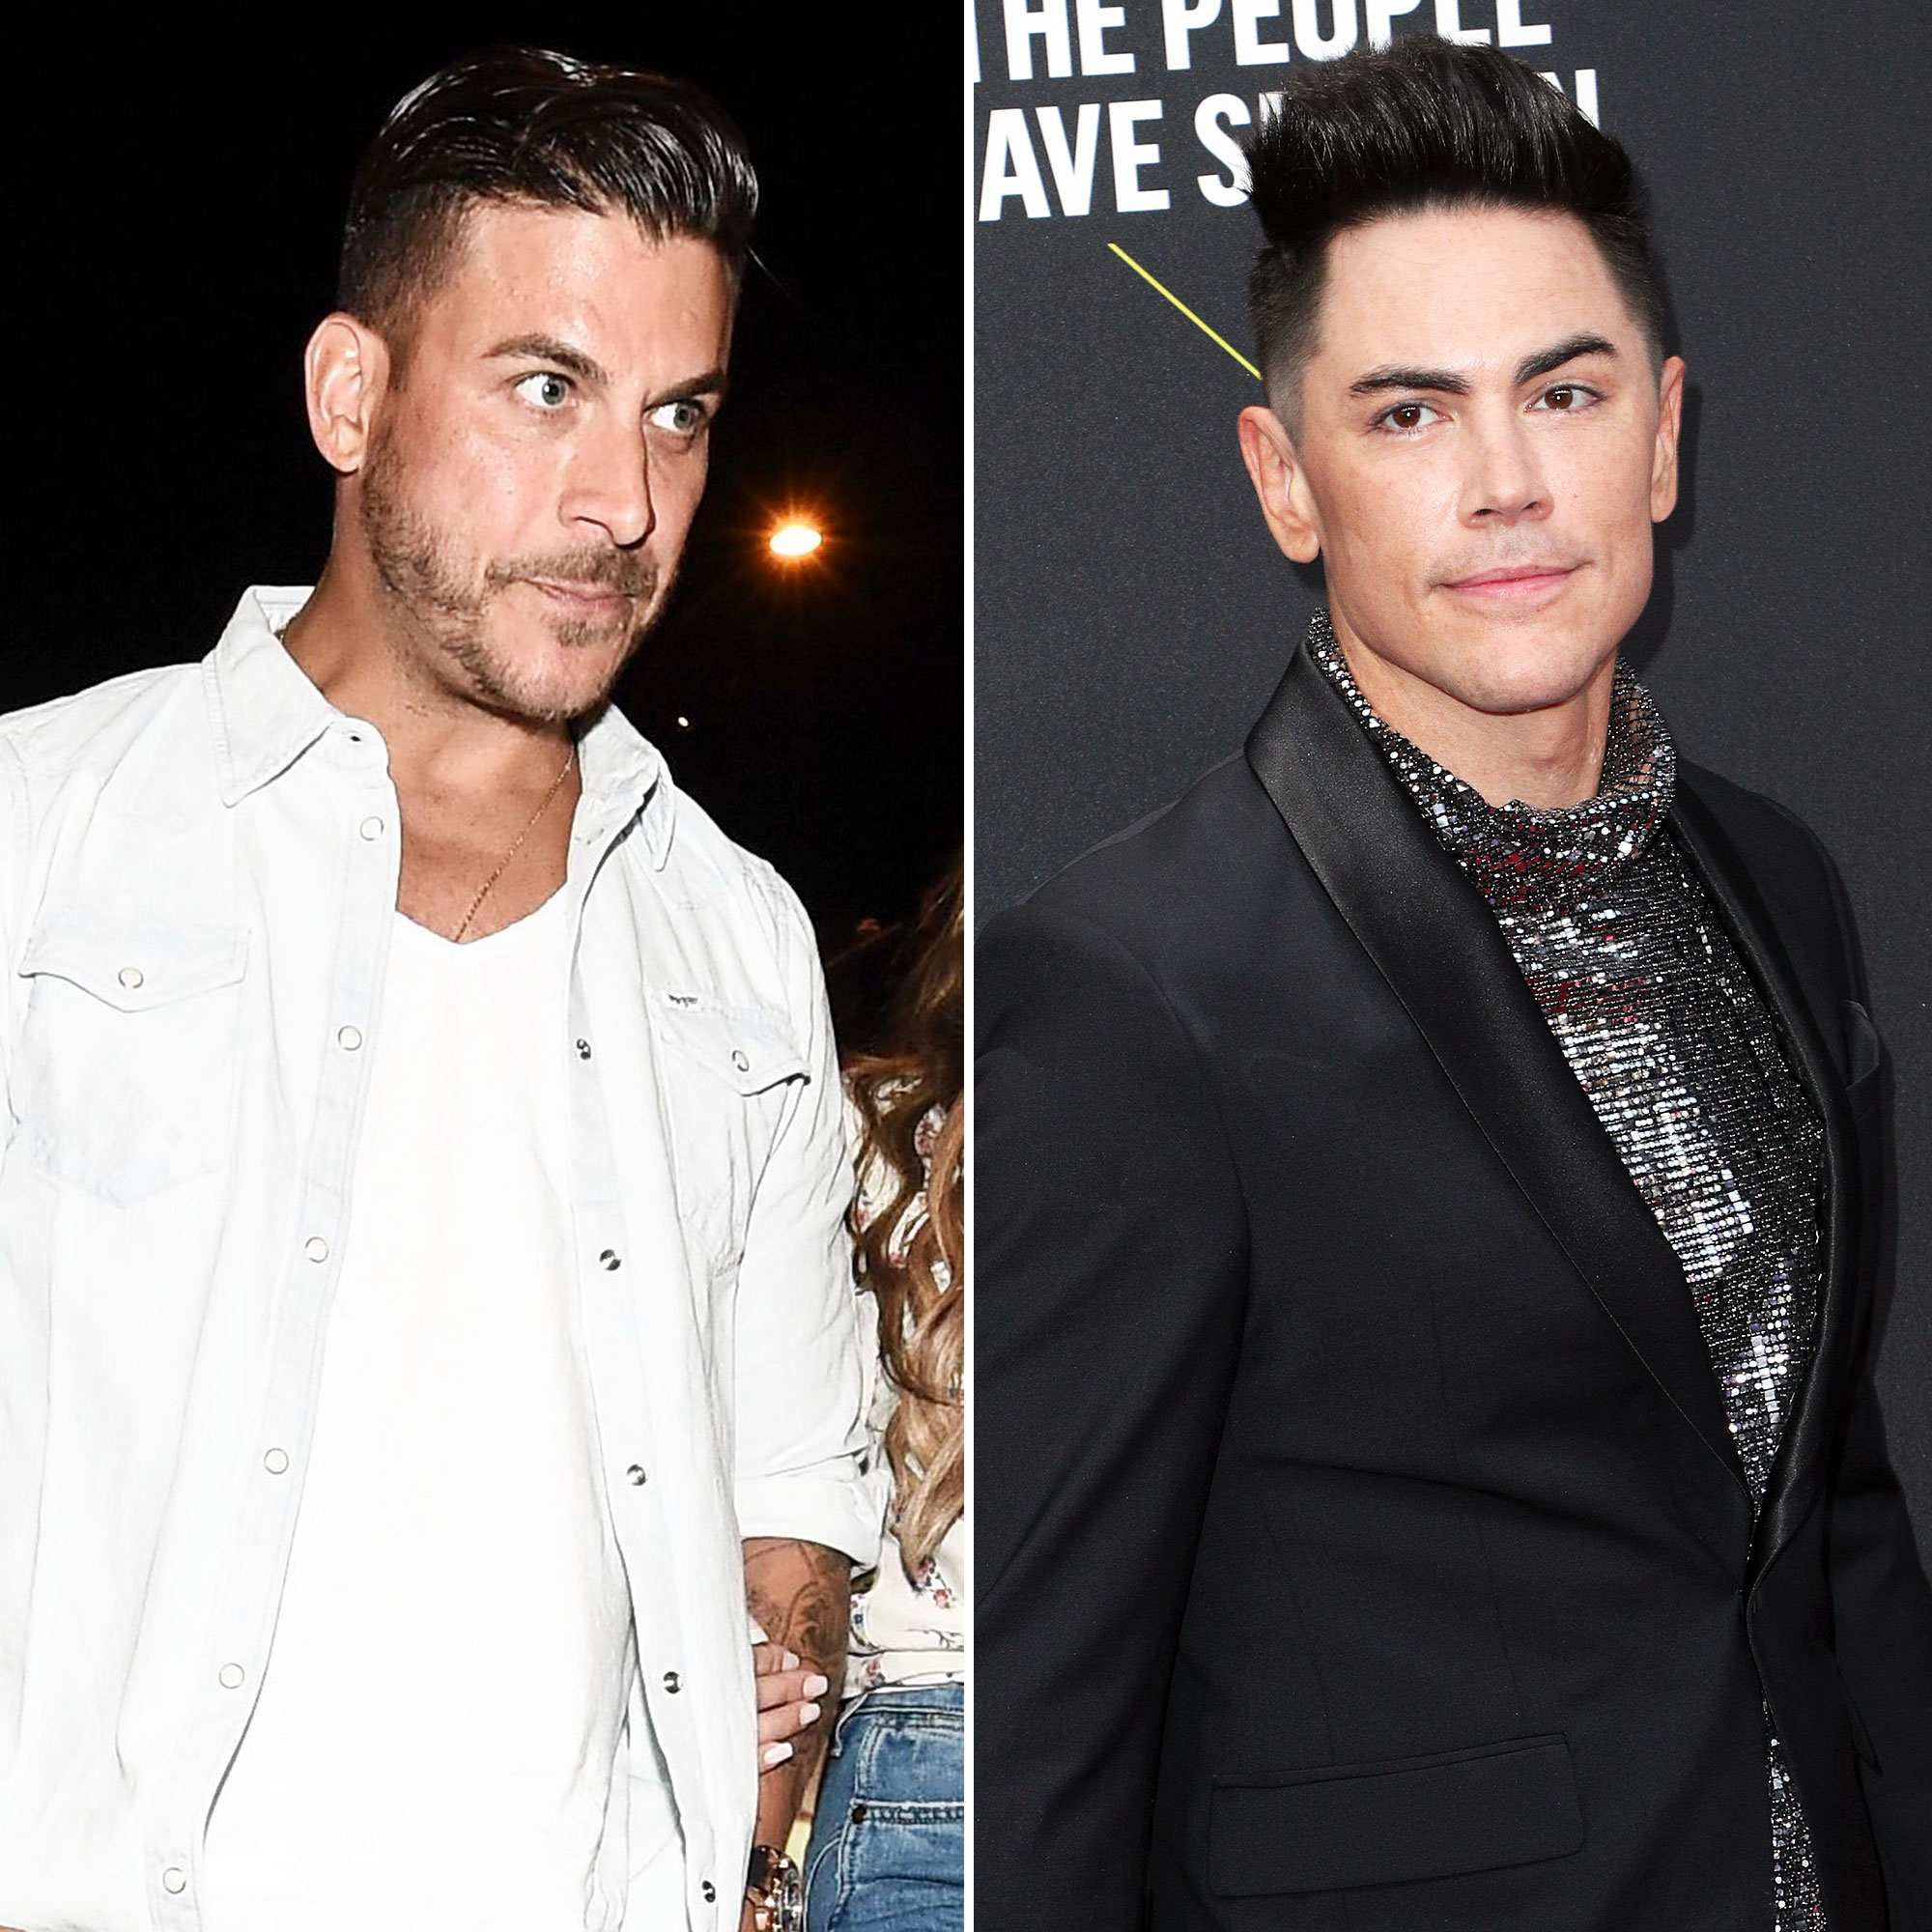 Jax Taylor Goes Off on Tom Sandoval After They Fight About His Wedding Pastor on Vanderpump Rules